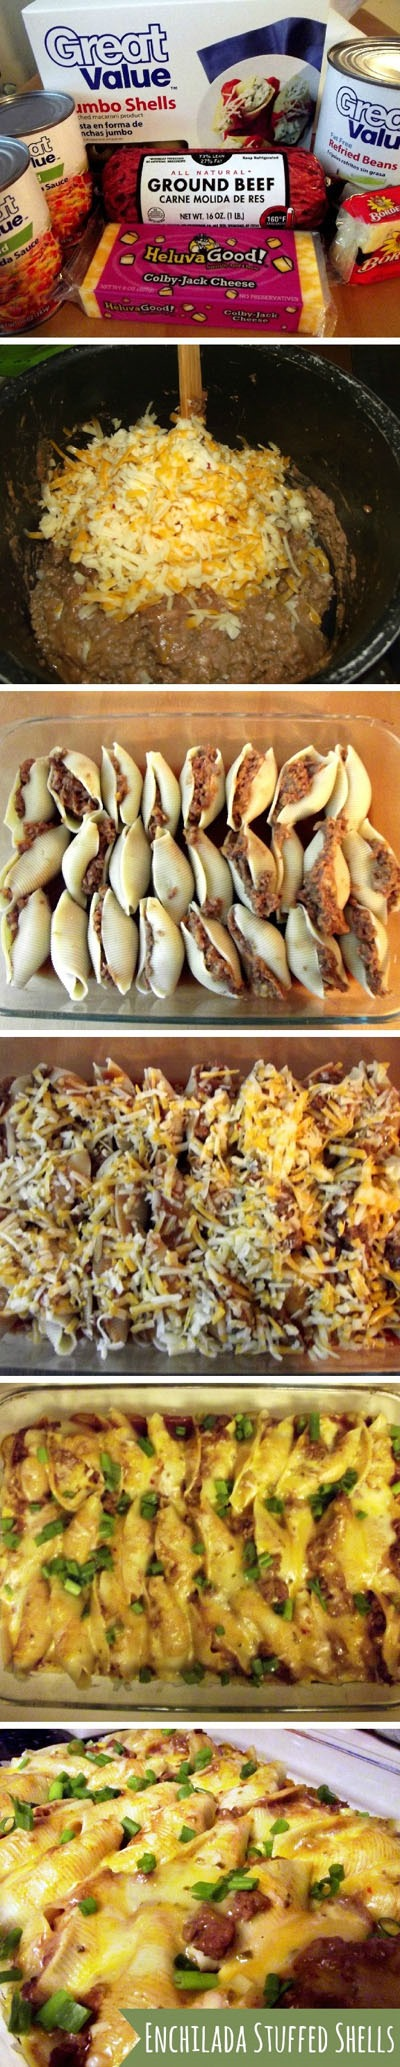 Enchilada-Stuffed-Shells